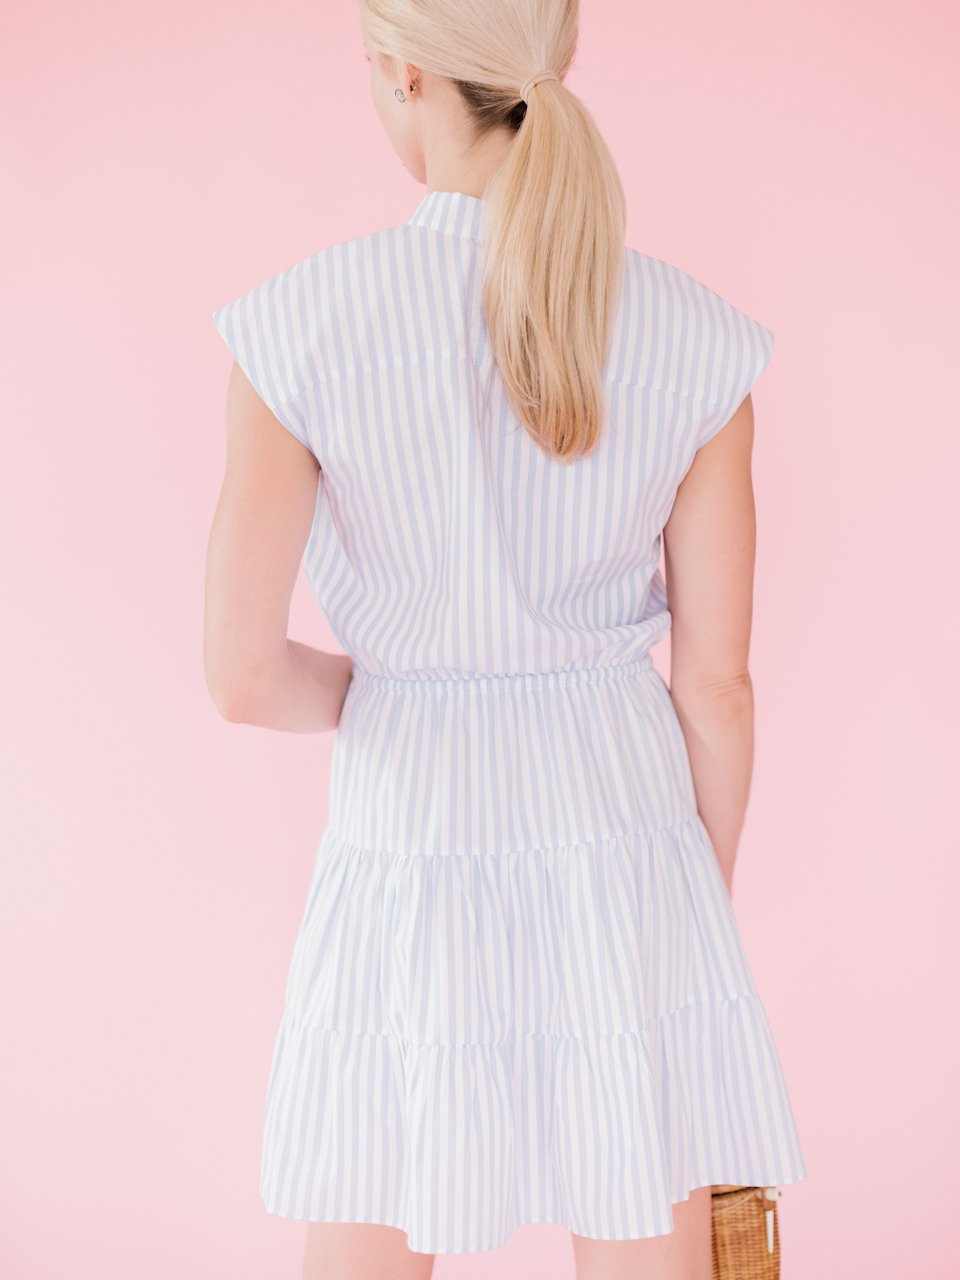 Chelsea Flounce Dress - Candy Blue Stripe